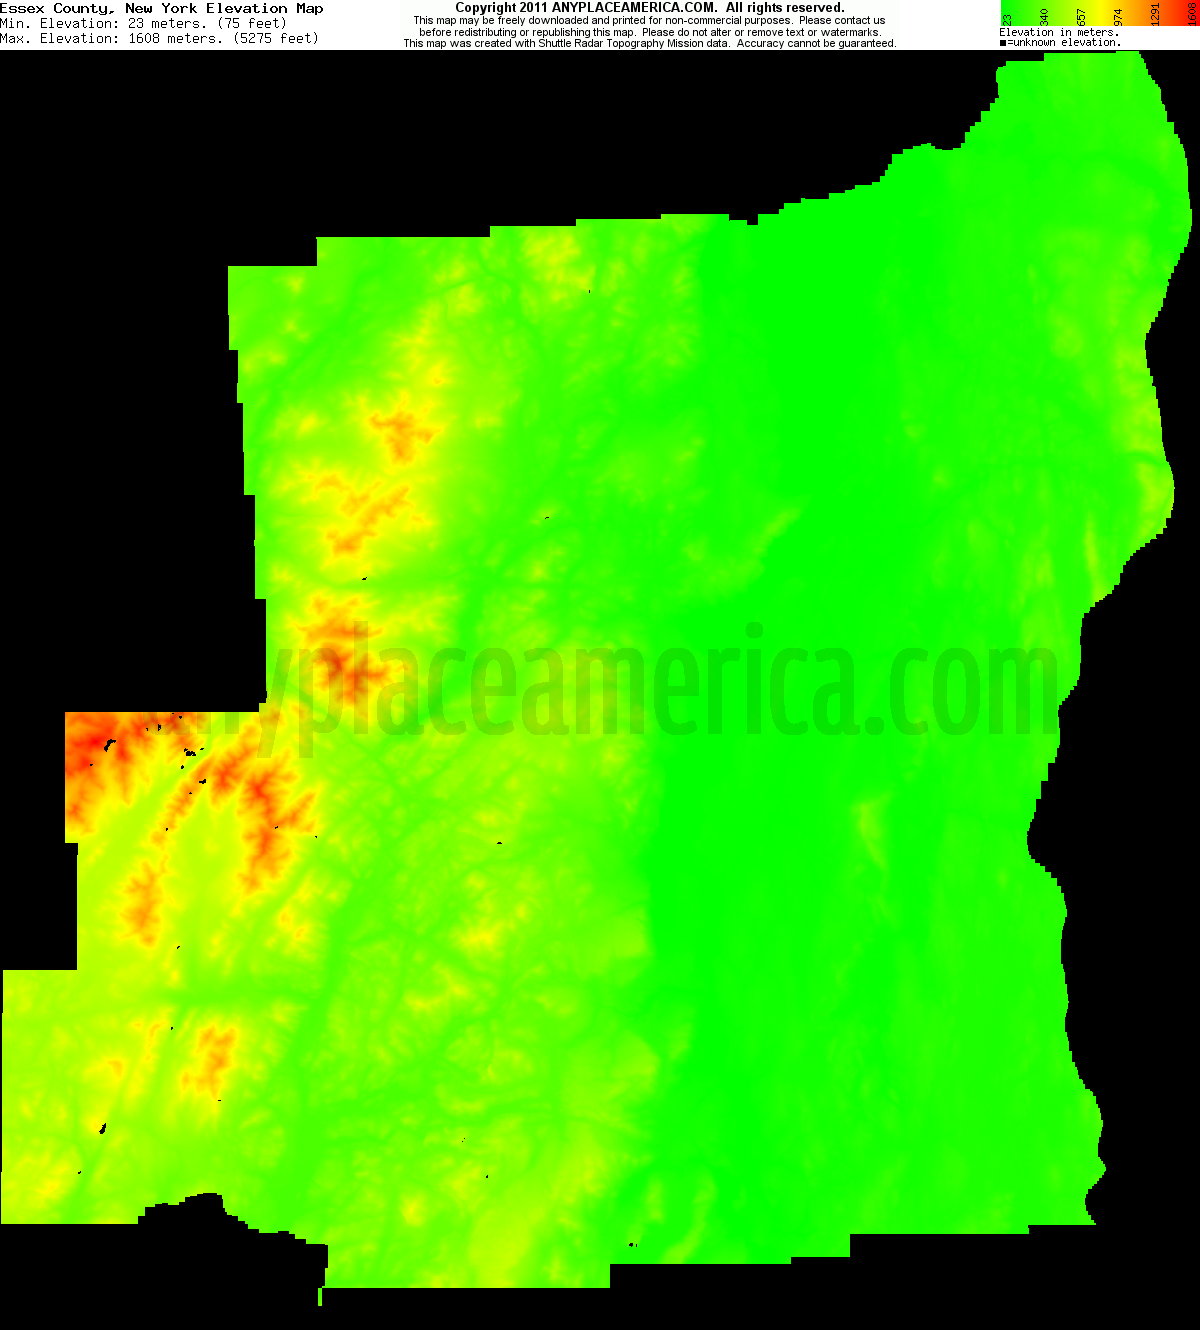 New york essex county keene - Download Essex County Elevation Map